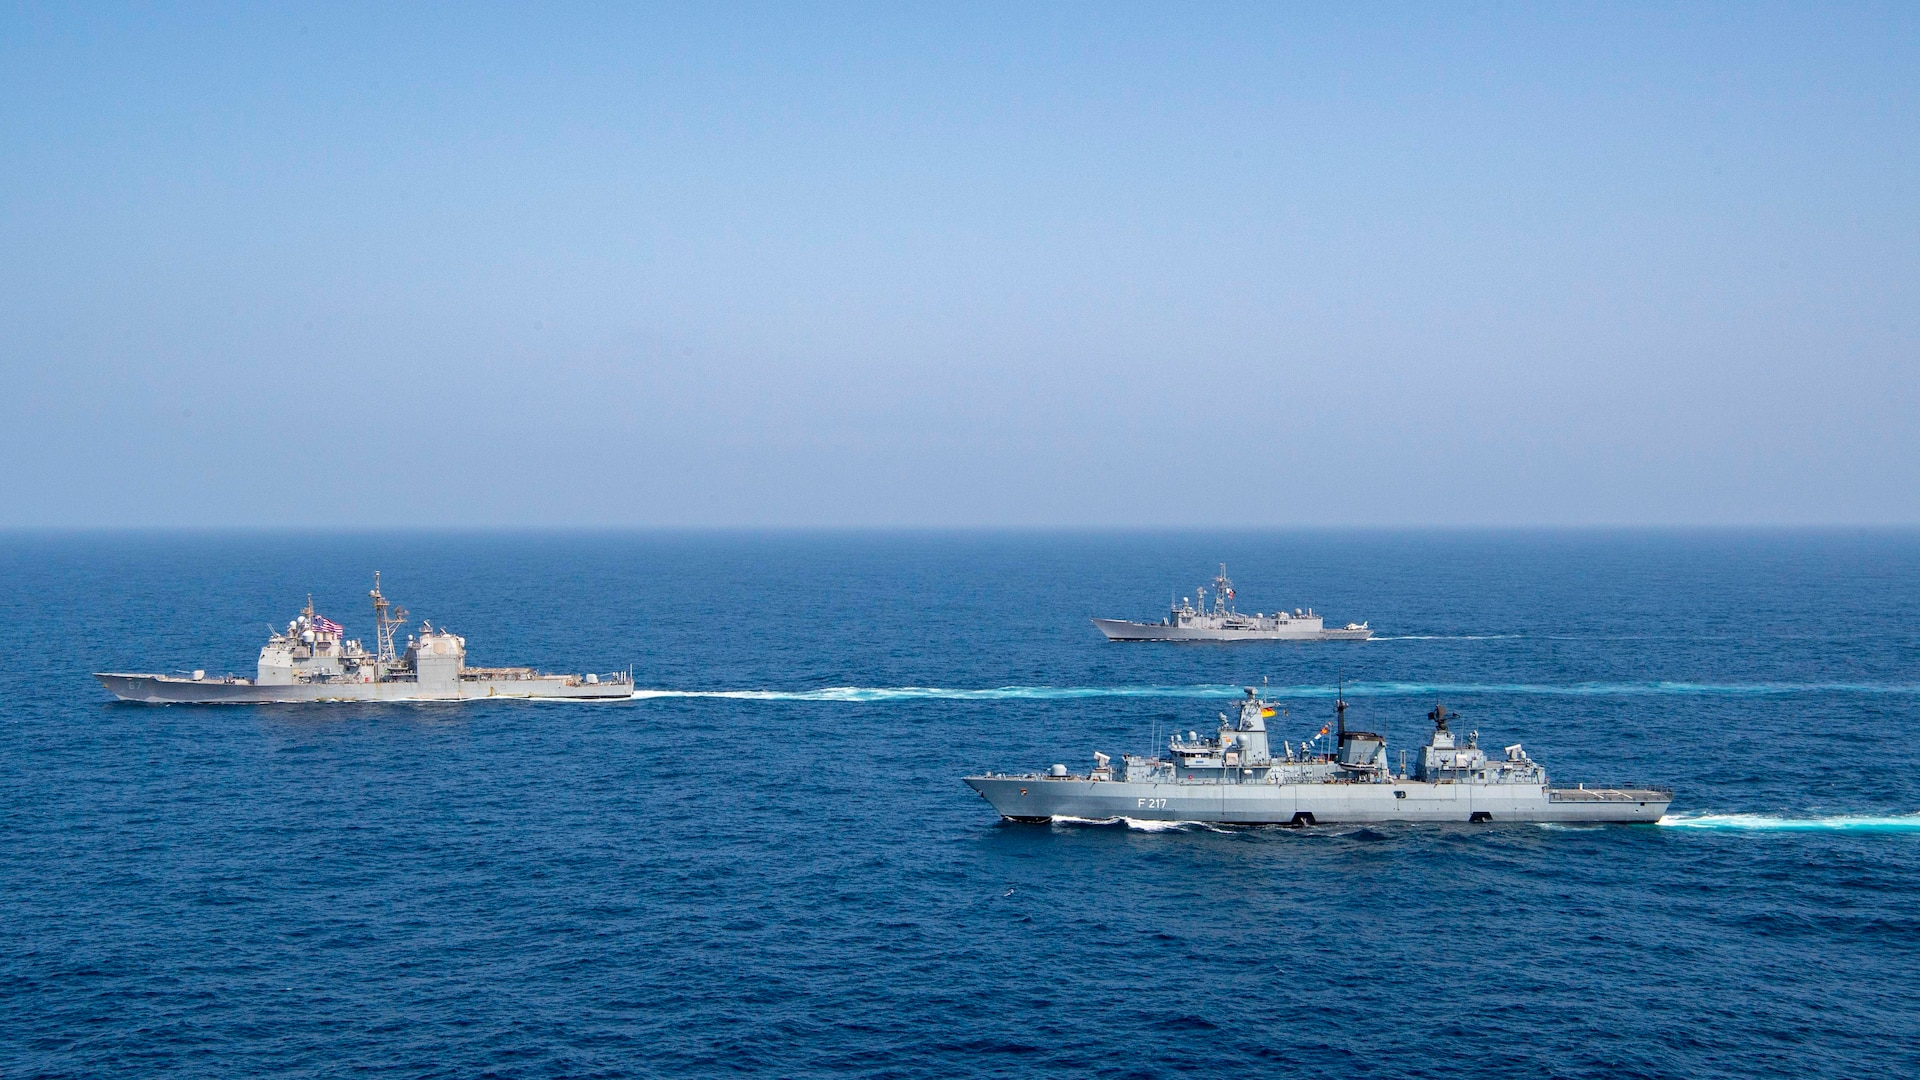 ARABIAN SEA (Sept. 6, 2021) The Pakistan Navy frigate PNS Alamgir (F 260), German Navy frigate FGS Bayern (F 217), and guided-missile cruiser USS Shiloh (CG 67) sail in formation during a passing exercise (PASSEX) in the Arabian Sea, Sept. 6. The exercise included advanced maneuvers and communication drills flexing the crews' abilities to operate together in a dynamic environment, and test and refine combined command and control processes. (U.S. Navy photo by Mass Communication Specialist 1st Class Rawad Madanat)